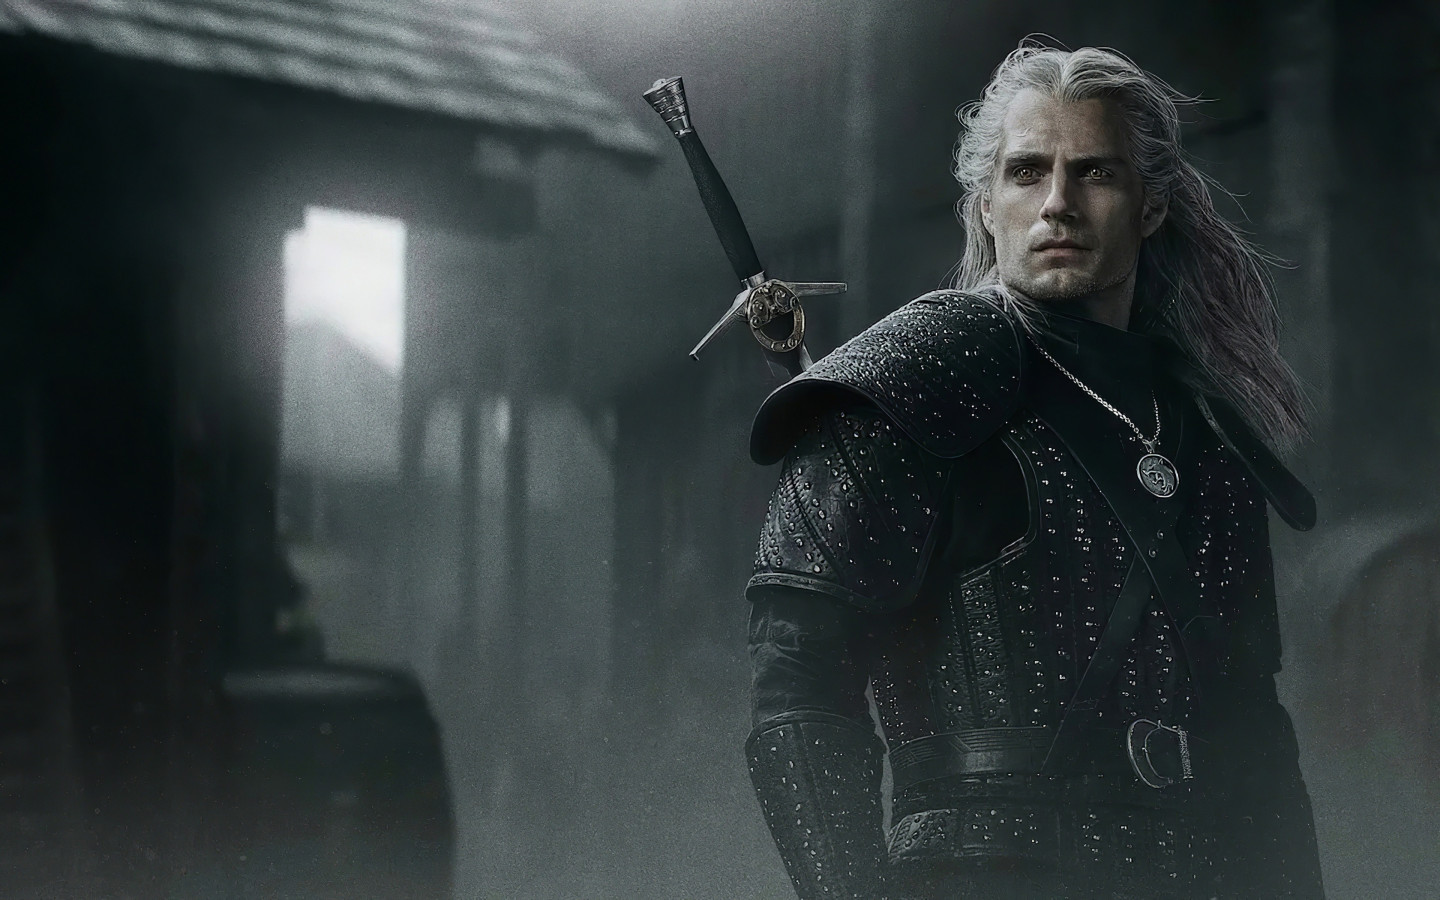 Henry Cavli in The Witcher wallpaper 1440x900